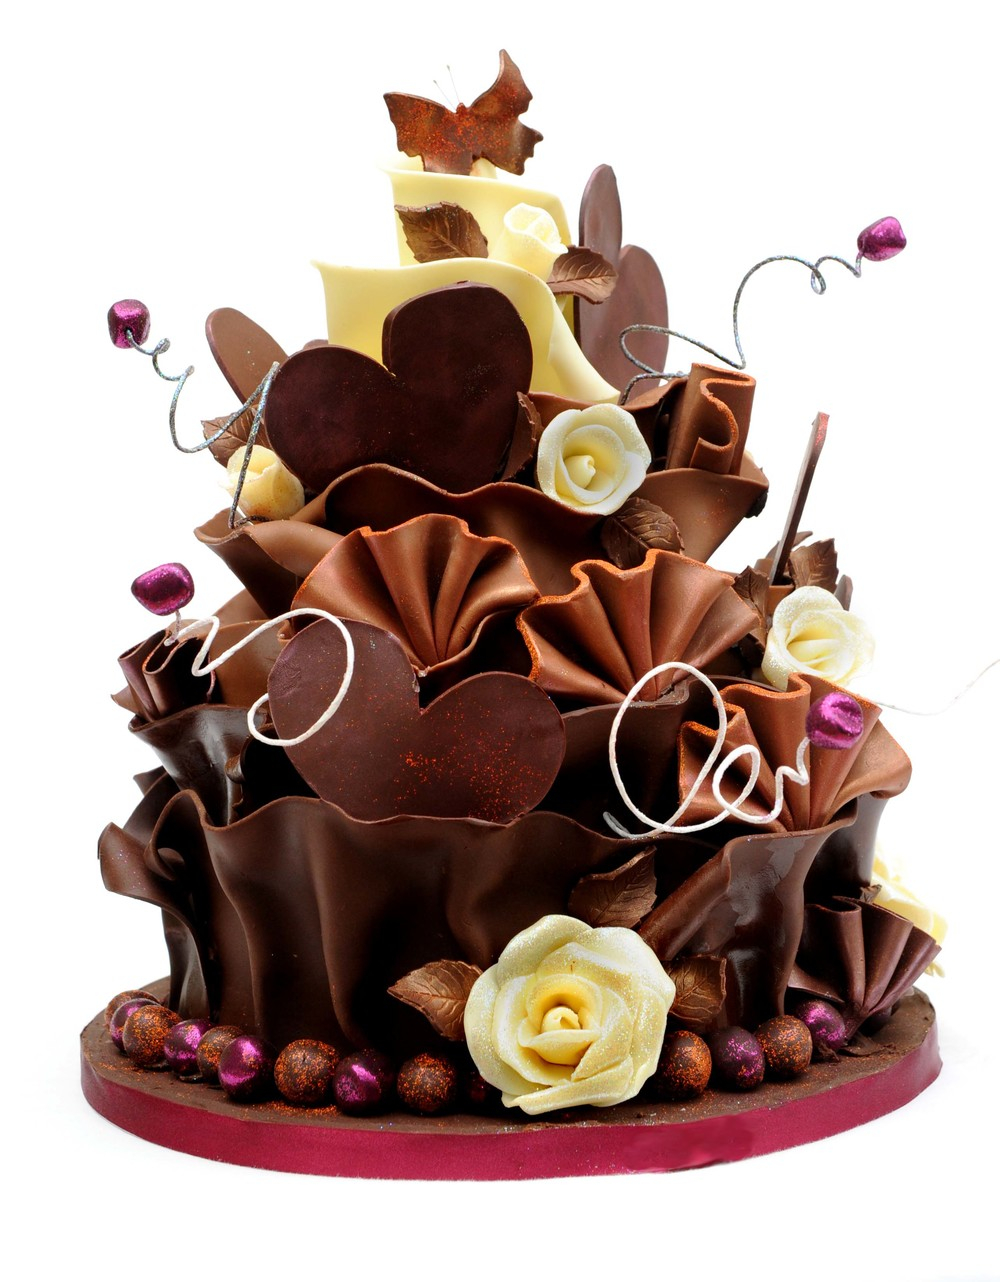 Birthday Cake Ideas For Adults Beautiful Birthday Cakes You Can Look 18th Birthday Cake Ideas You